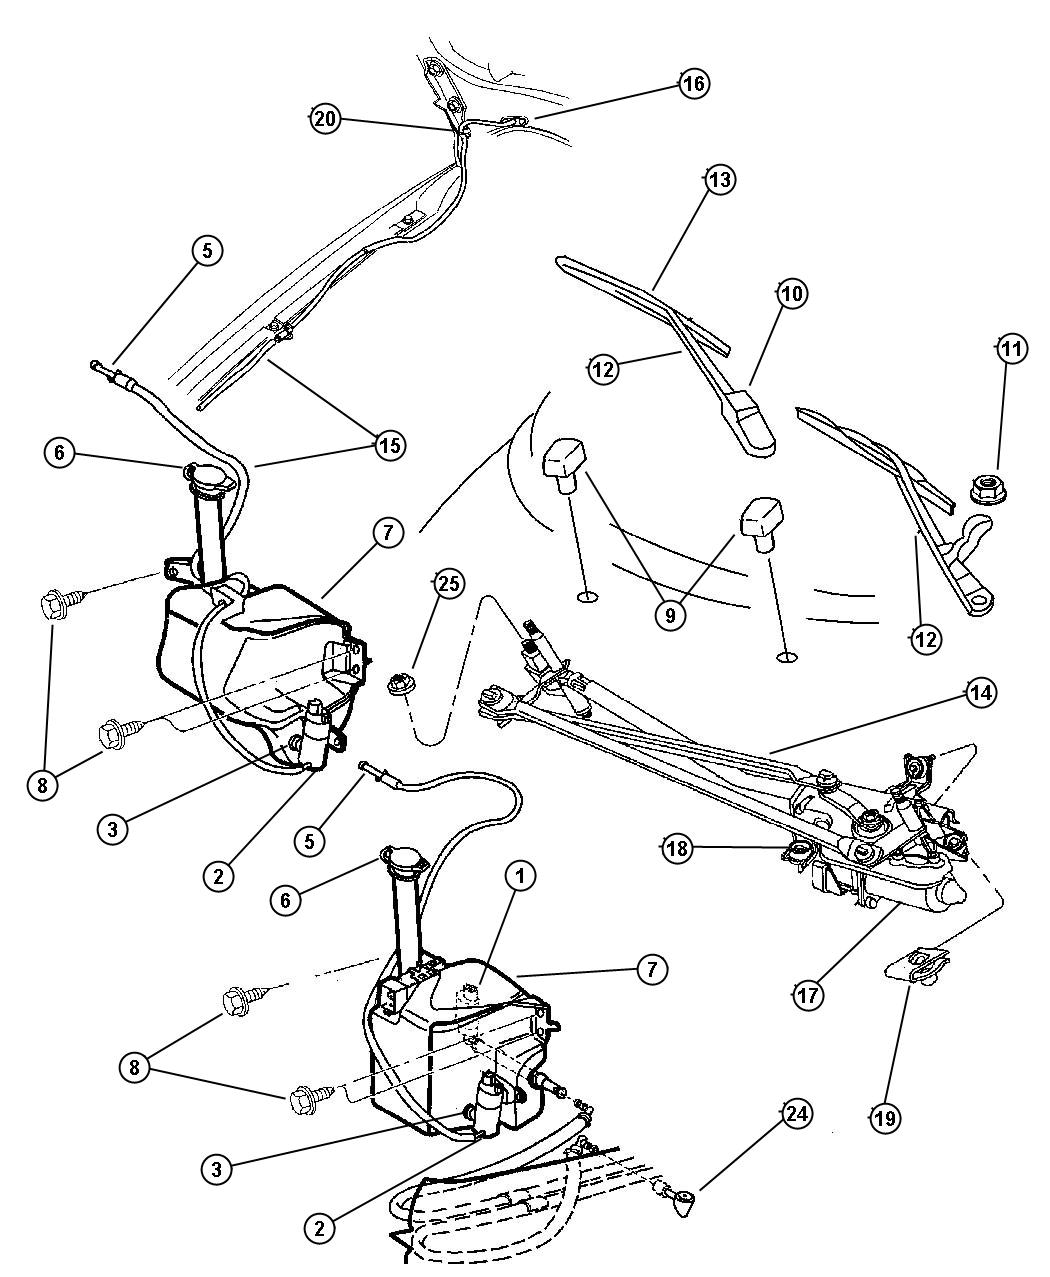 Dodge Rear Wiper Motor Schematic, Dodge, Get Free Image